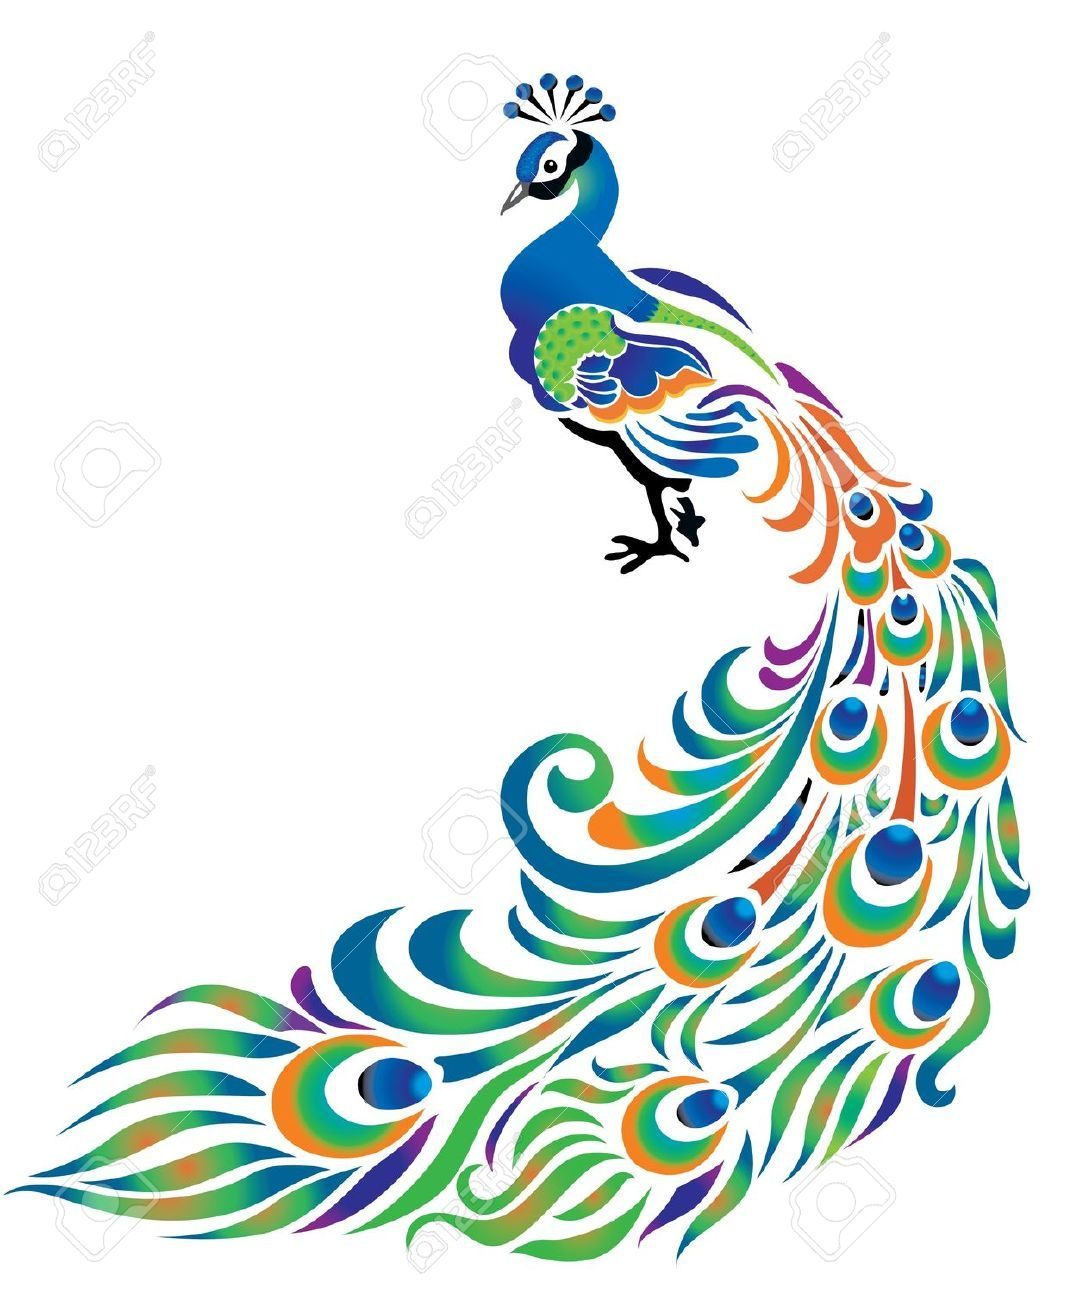 peacock feathers images stock pictures royalty free peacock